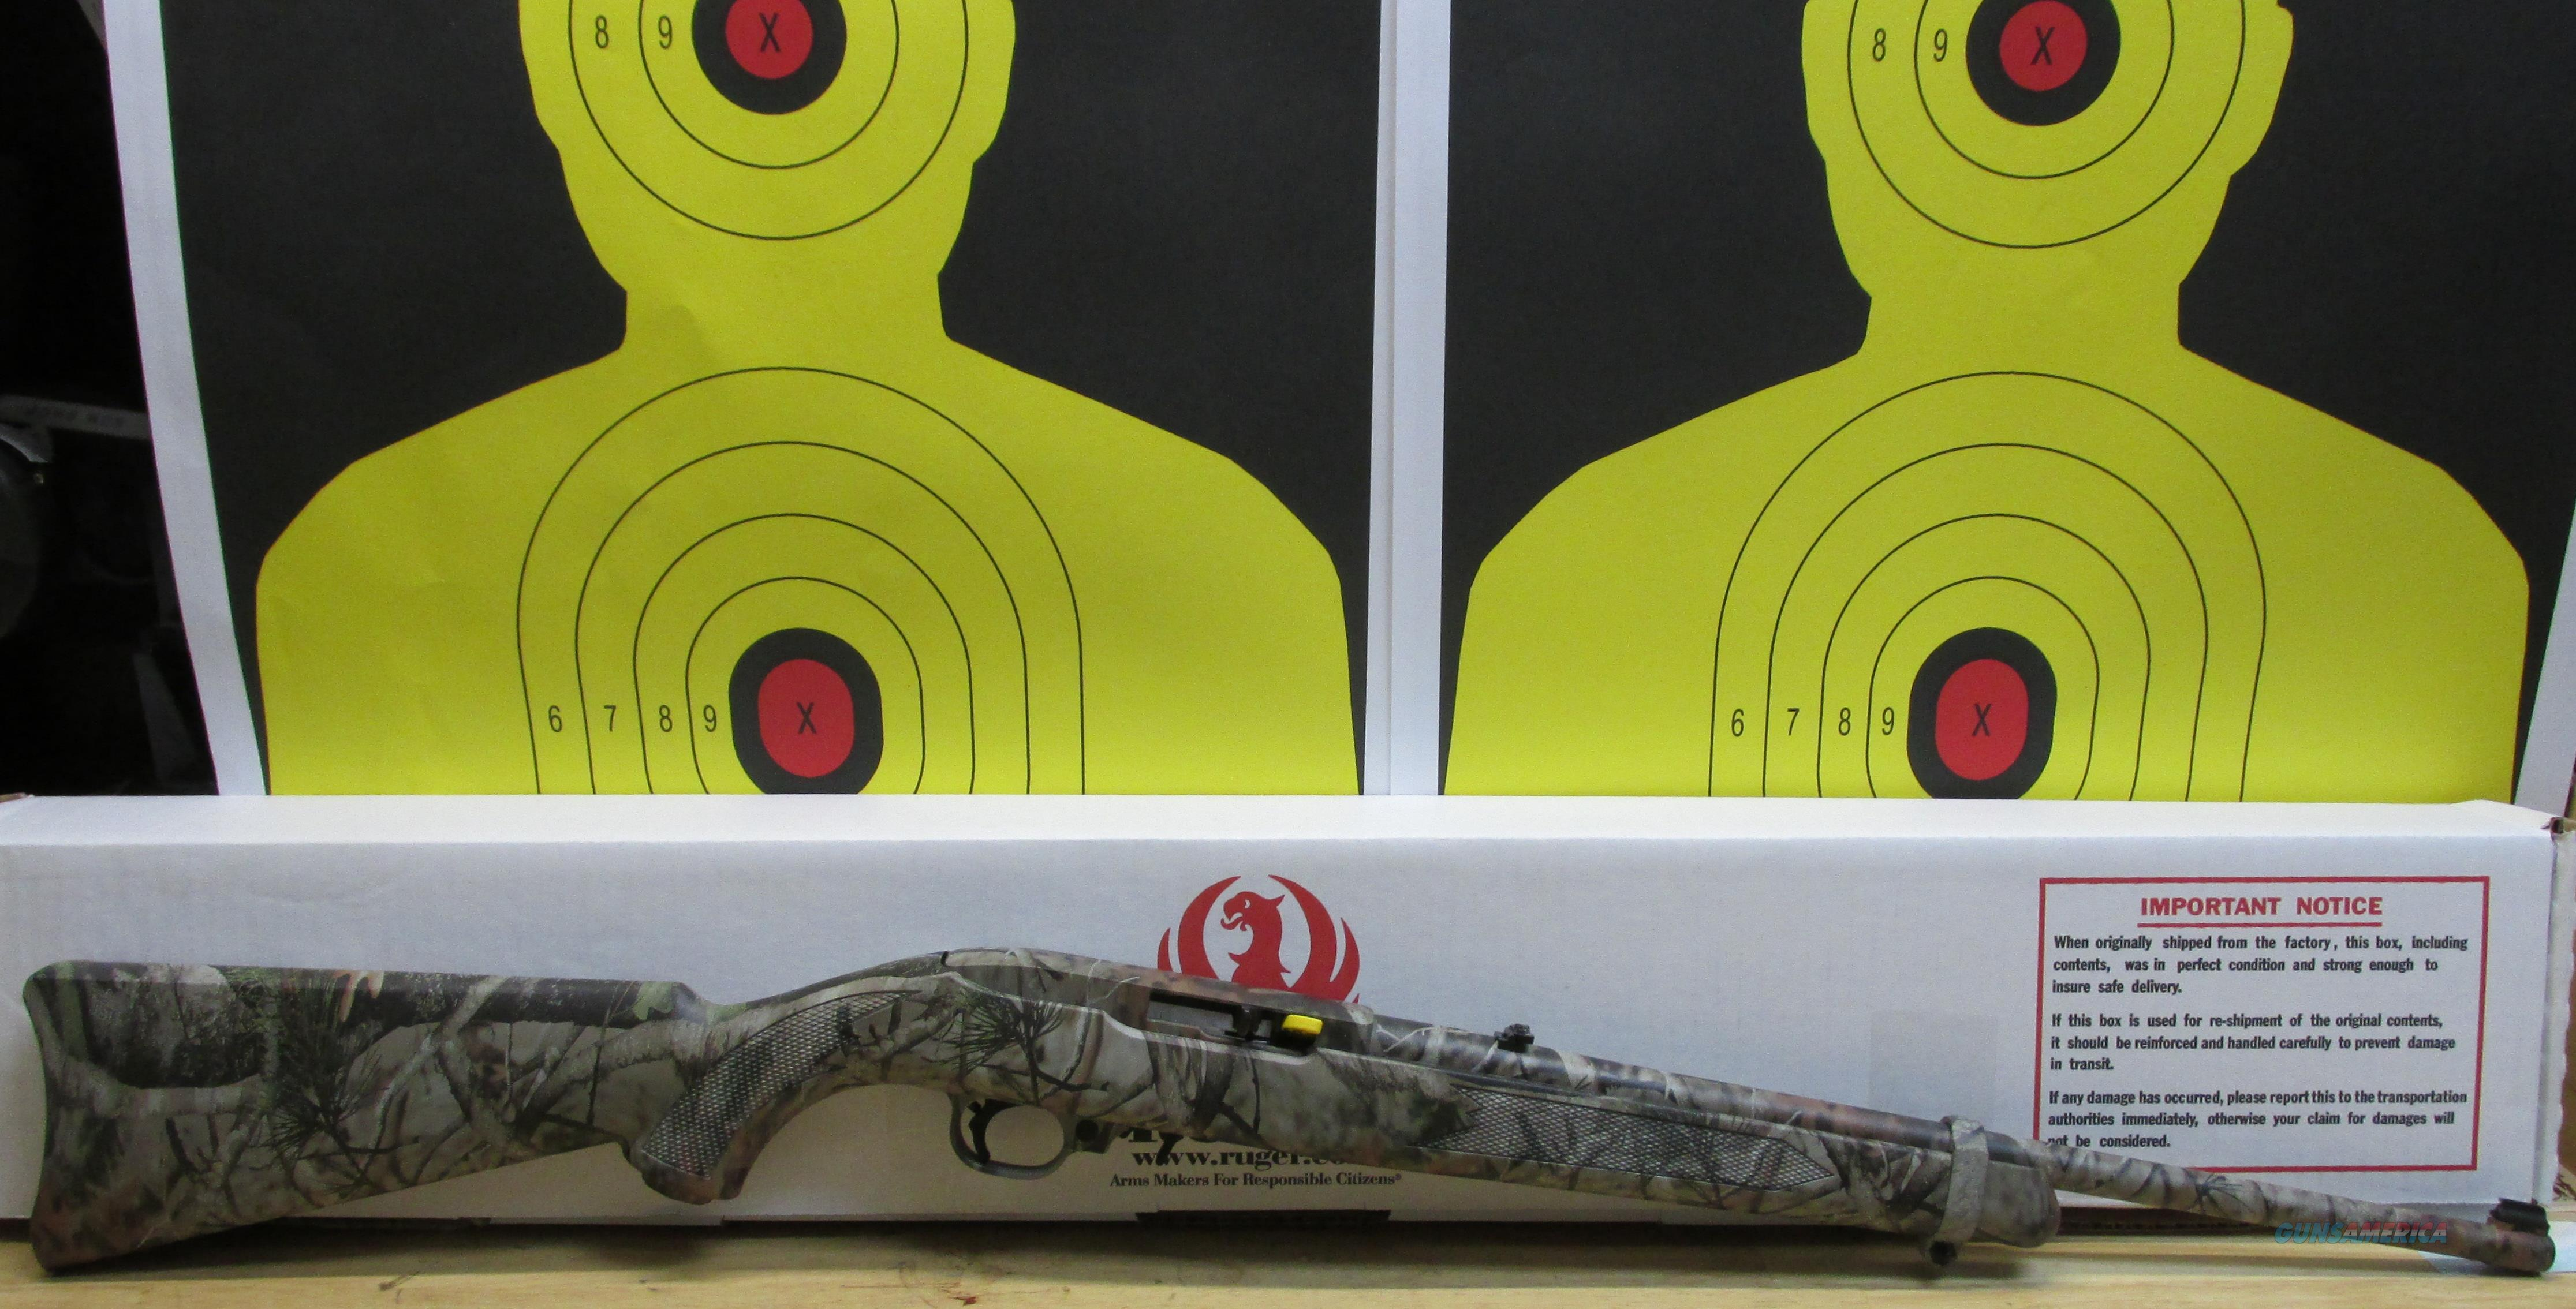 "RUGER 10/22 .22LR RIFLE CAMO NEXT G-1VISTA SYNTHETIC STOCK, 10 ROUND MAGAZINE, 18.5"" BARREL  Guns > Rifles > Ruger Rifles > 10-22"